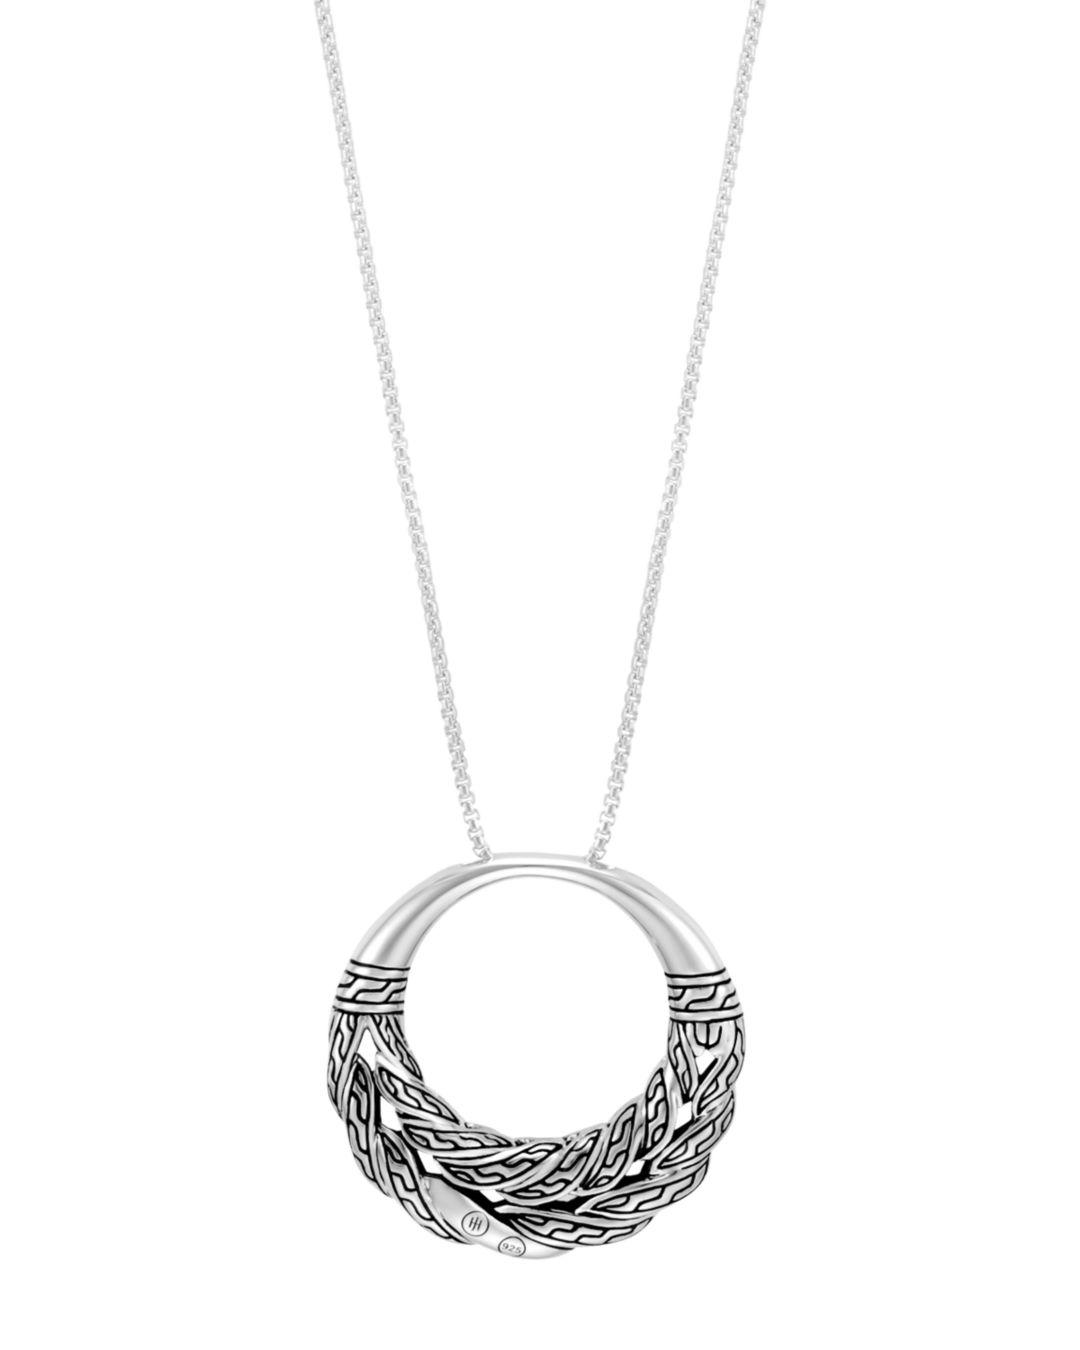 John Hardy Sterling Silver Classic Chain Box Chain Pendant Necklace With Black Sapphire in Black/Silver (Metallic)